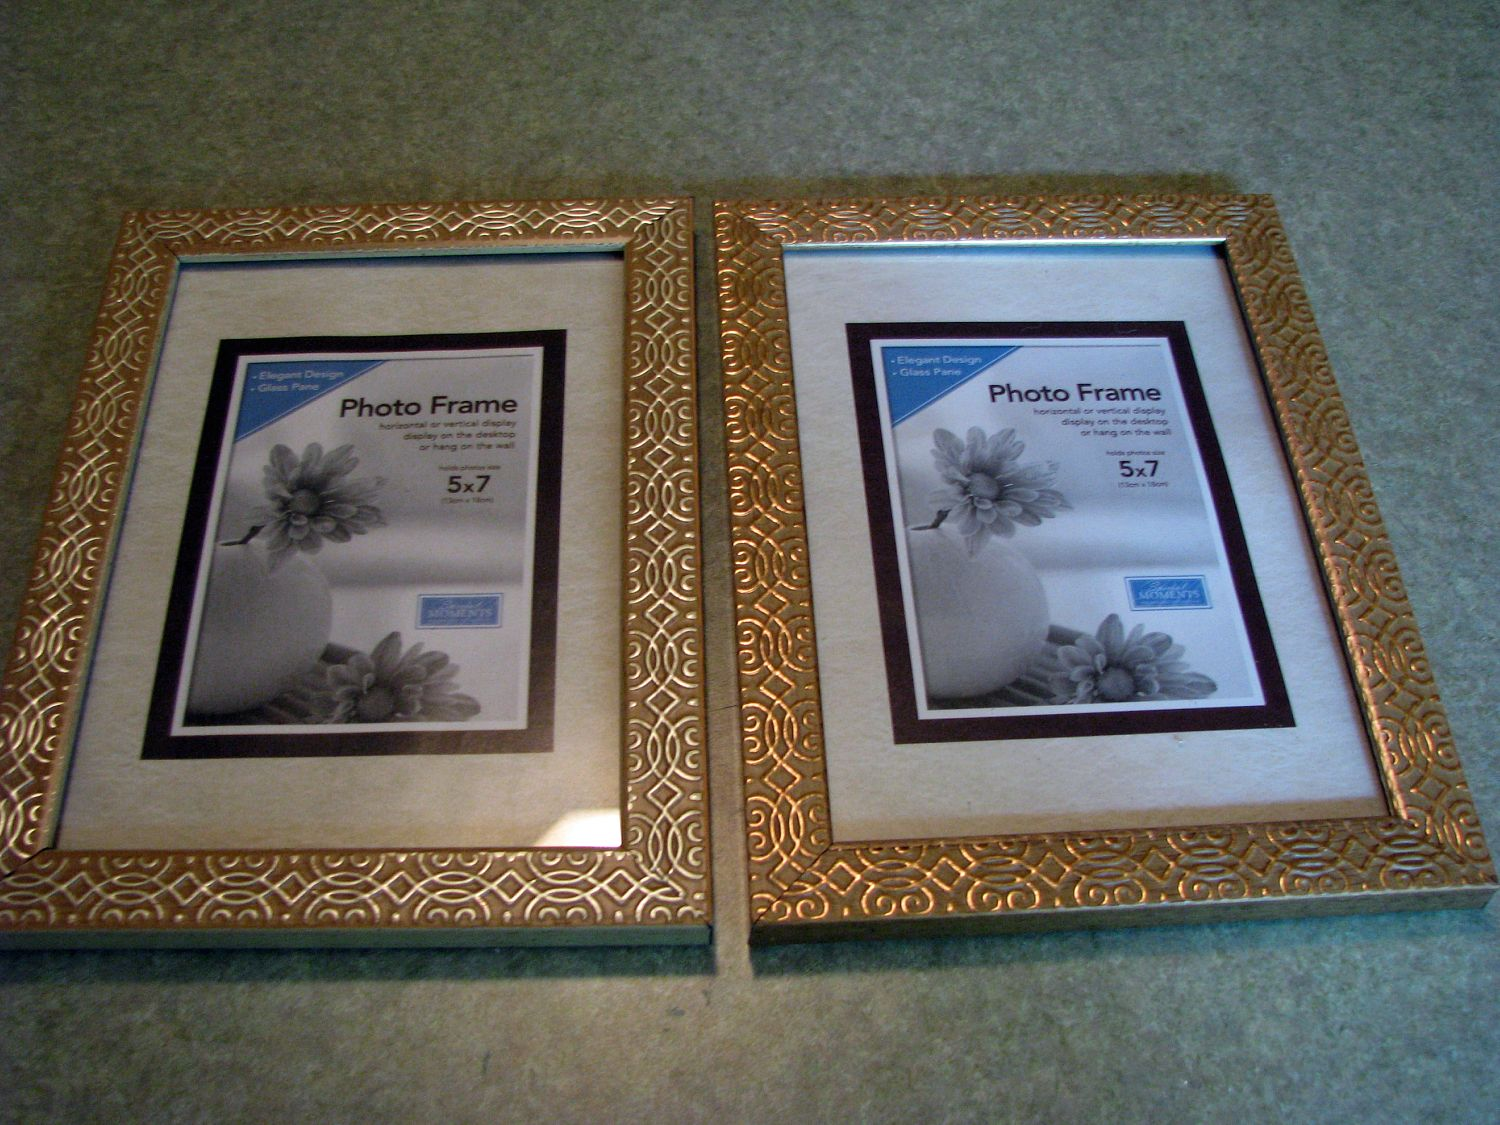 i picked up the frames at the dollar tree